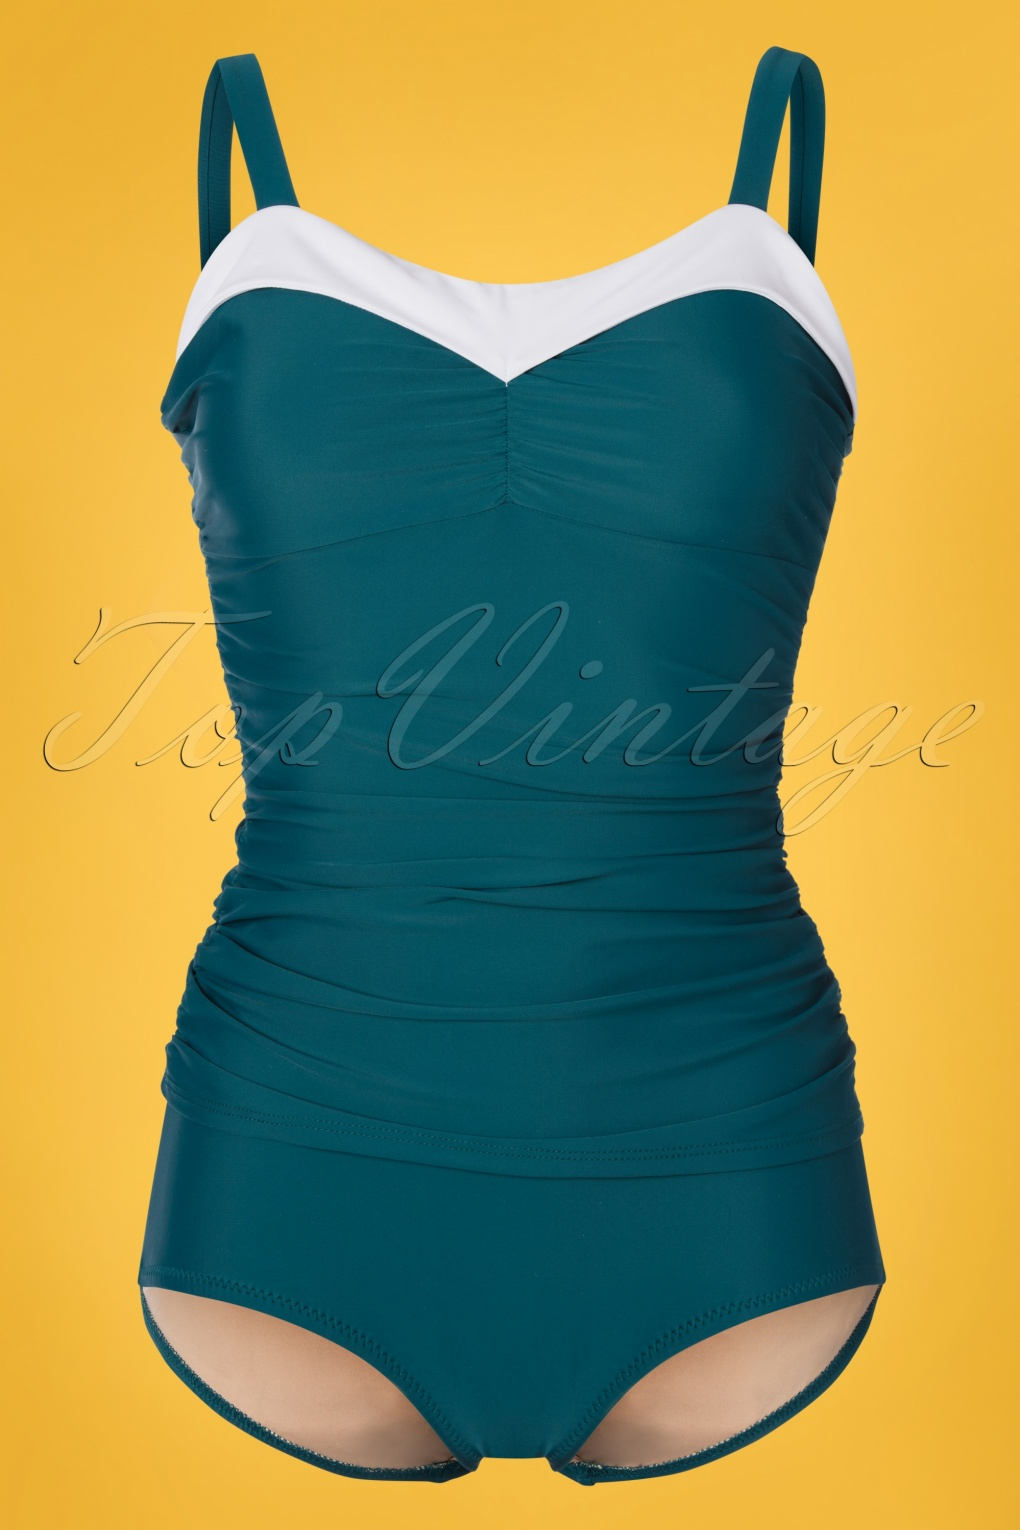 4918e0dfeacbb 1950s Bathing Suits, Swimsuits History 50s Regina One Piece Swimsuit in  Teal Green  99.40